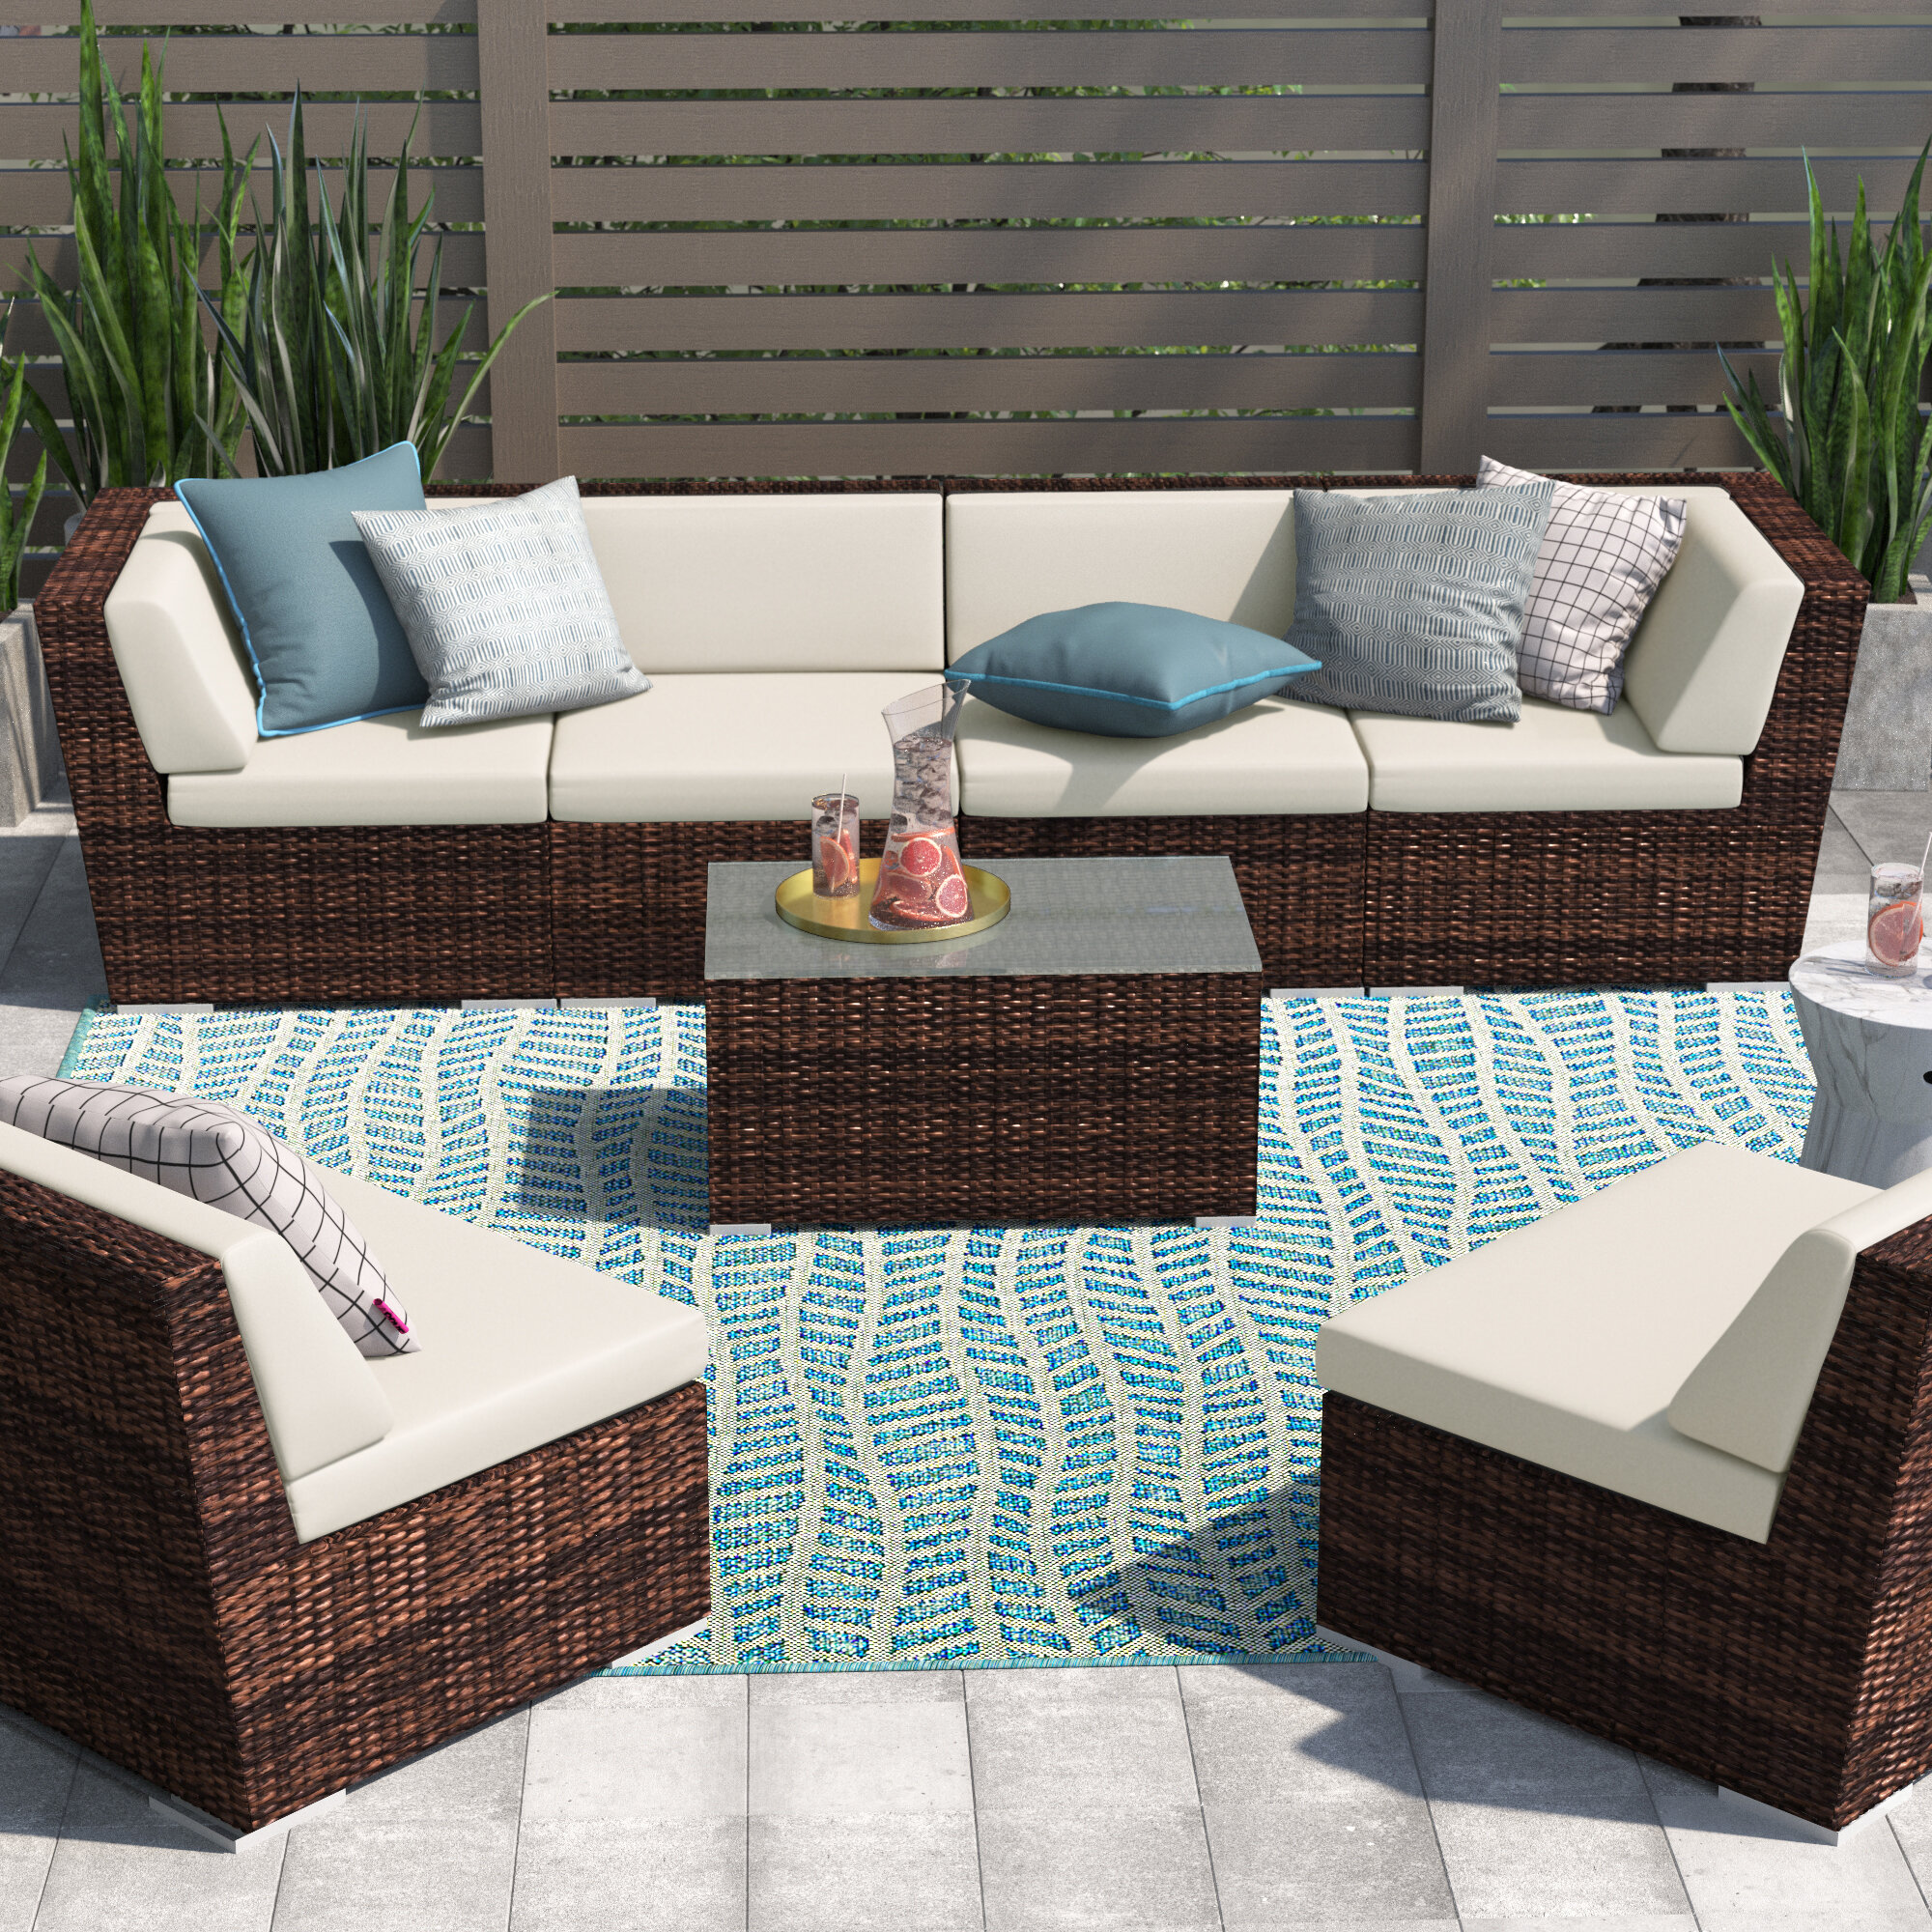 Orren Ellis Barneveld 7 Piece Rattan Sectional Seating Group With Cushions Reviews Wayfair